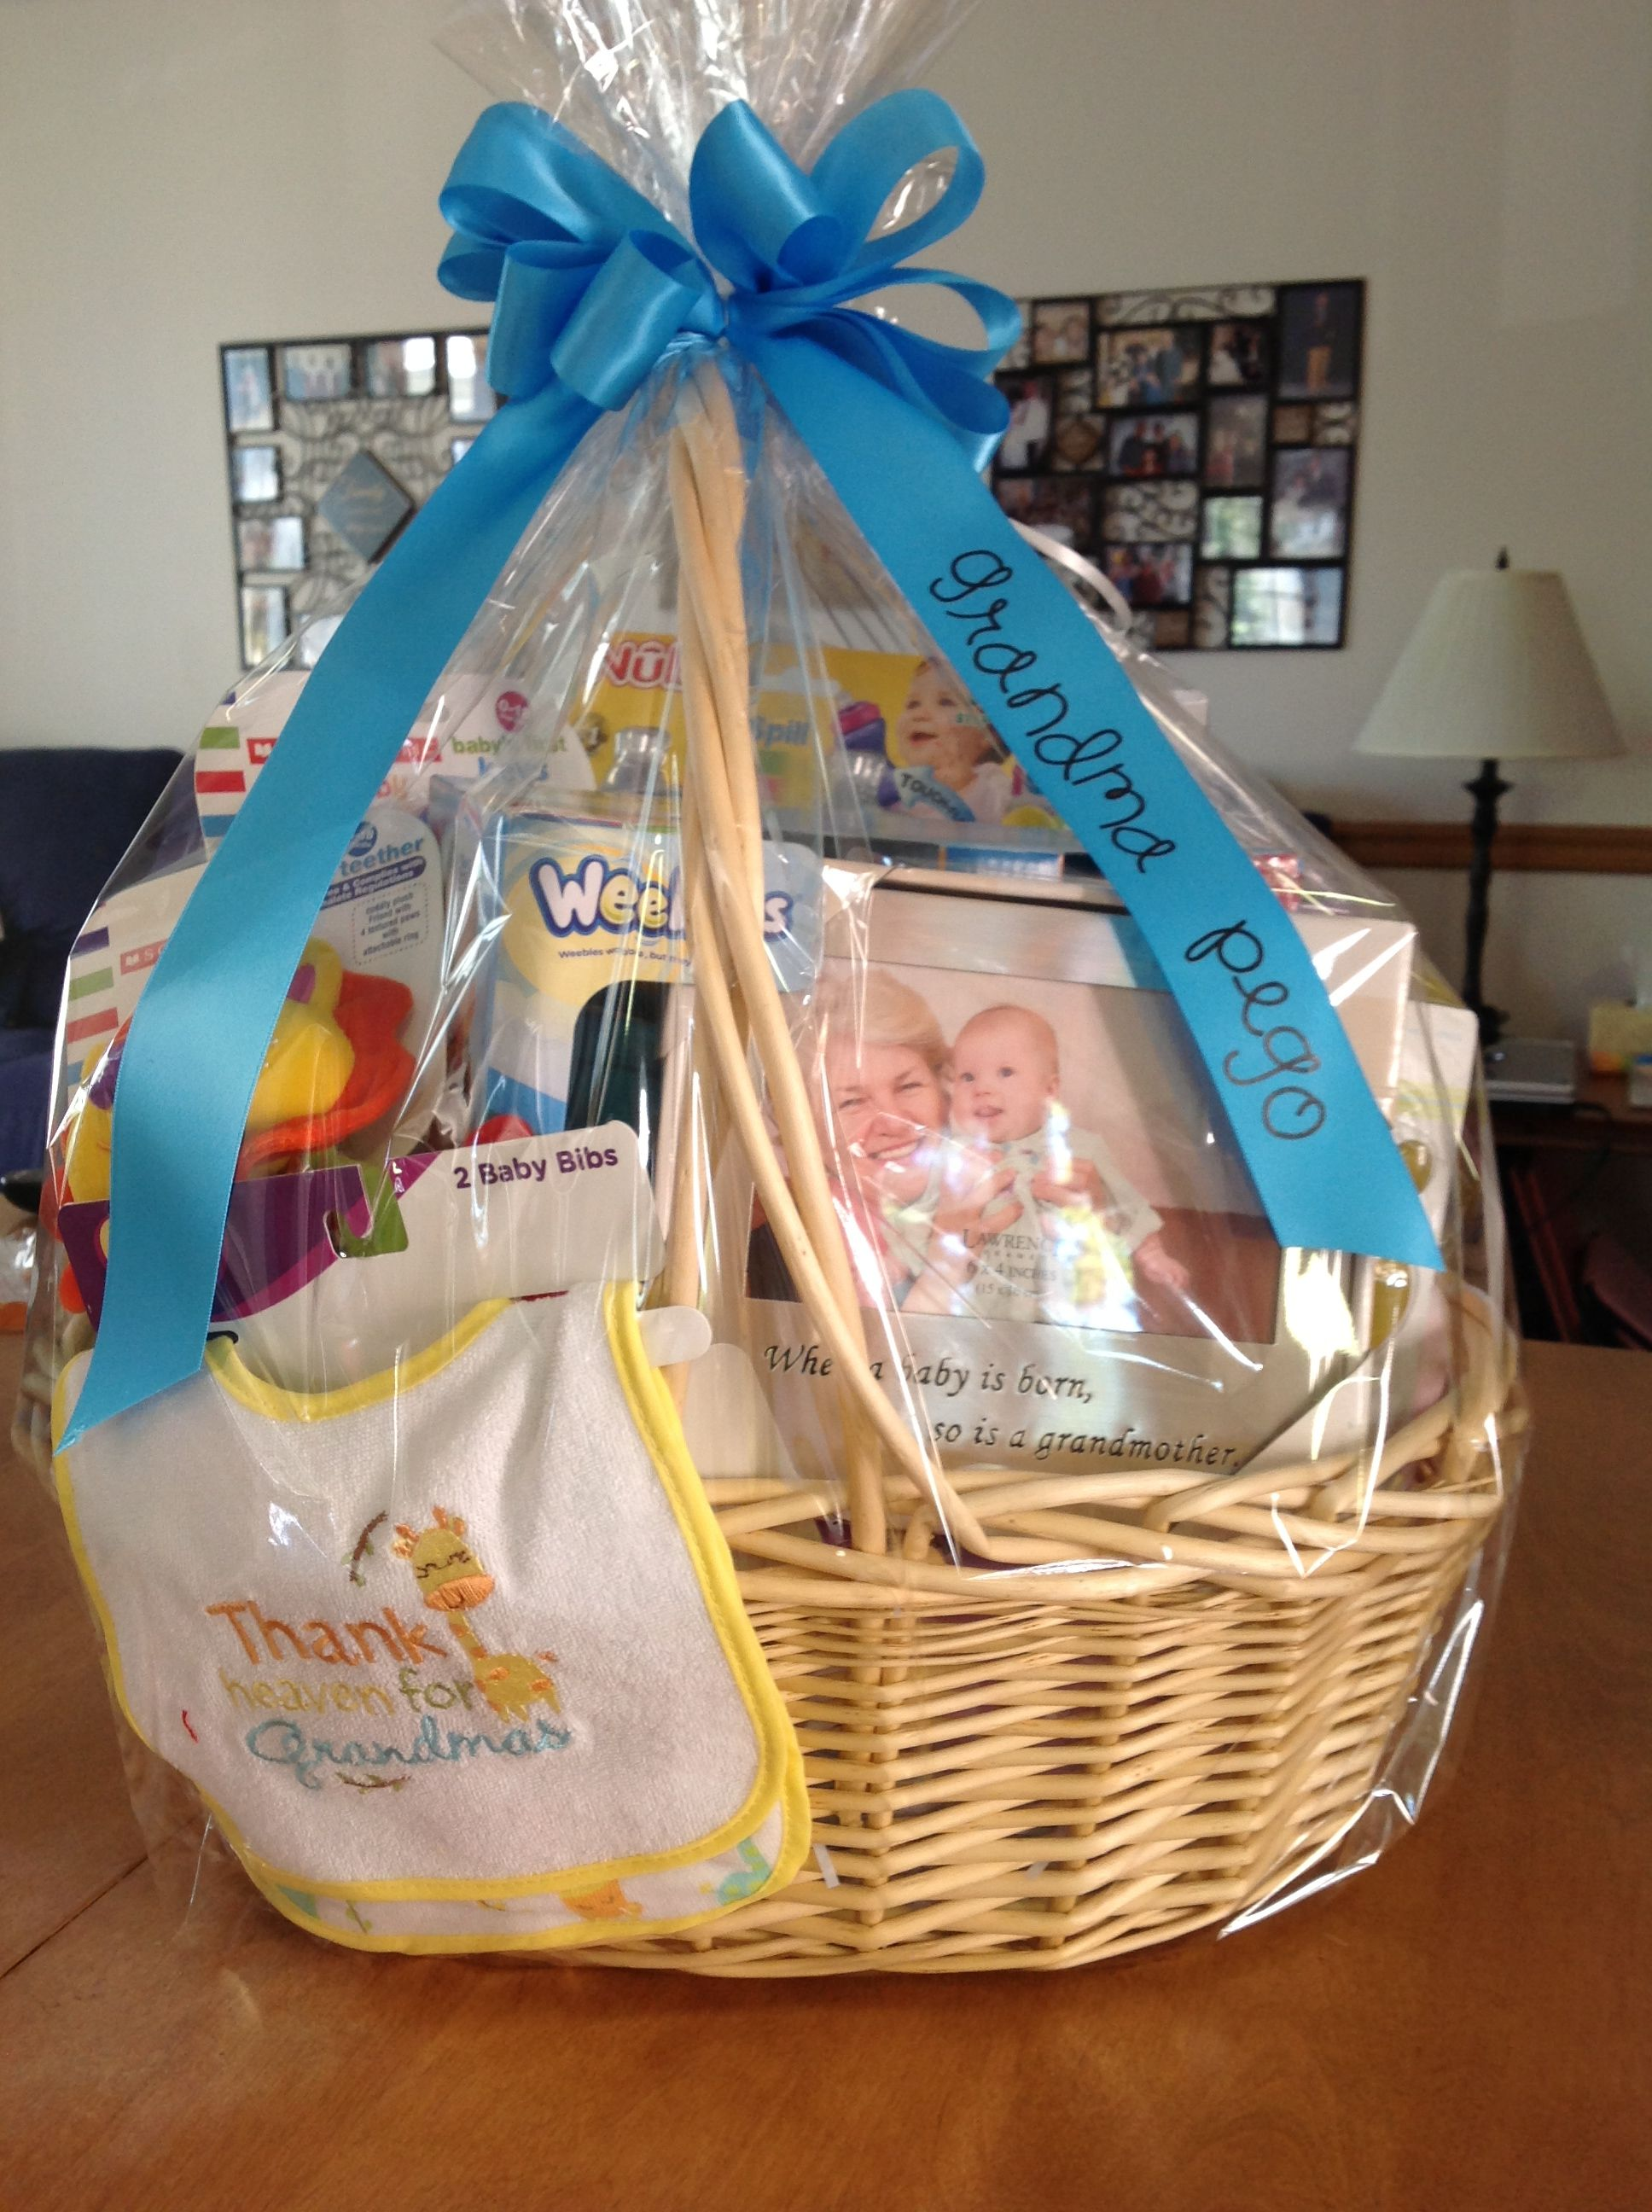 Grandmother Dress For Baby Shower : grandmother, dress, shower, Cynthia, Schirm, Creative, Shower, Gifts, Shower,, Gifts,, Basket